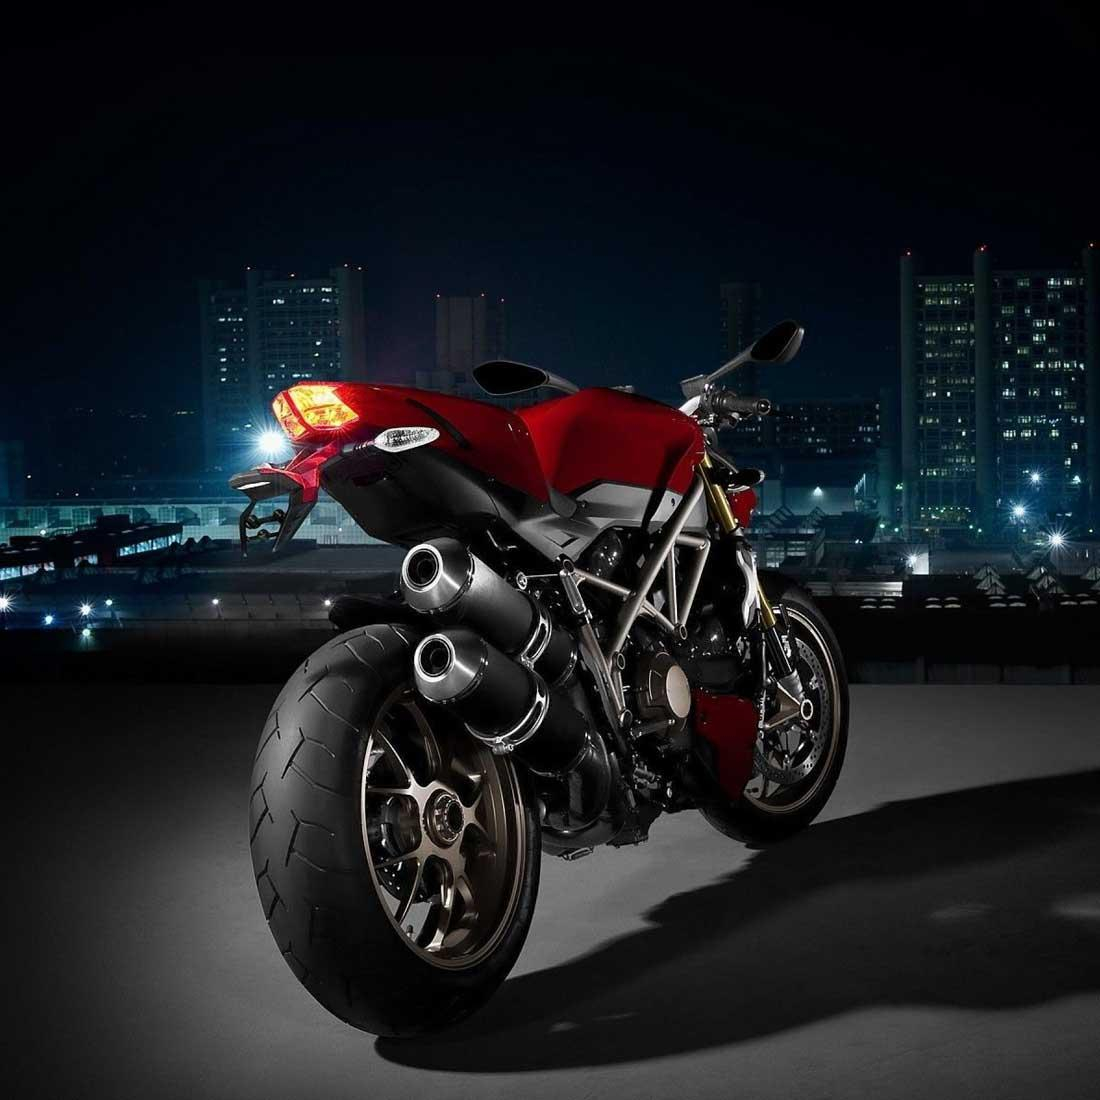 4K Motorcycles Live Wallpaper for Android APK Download